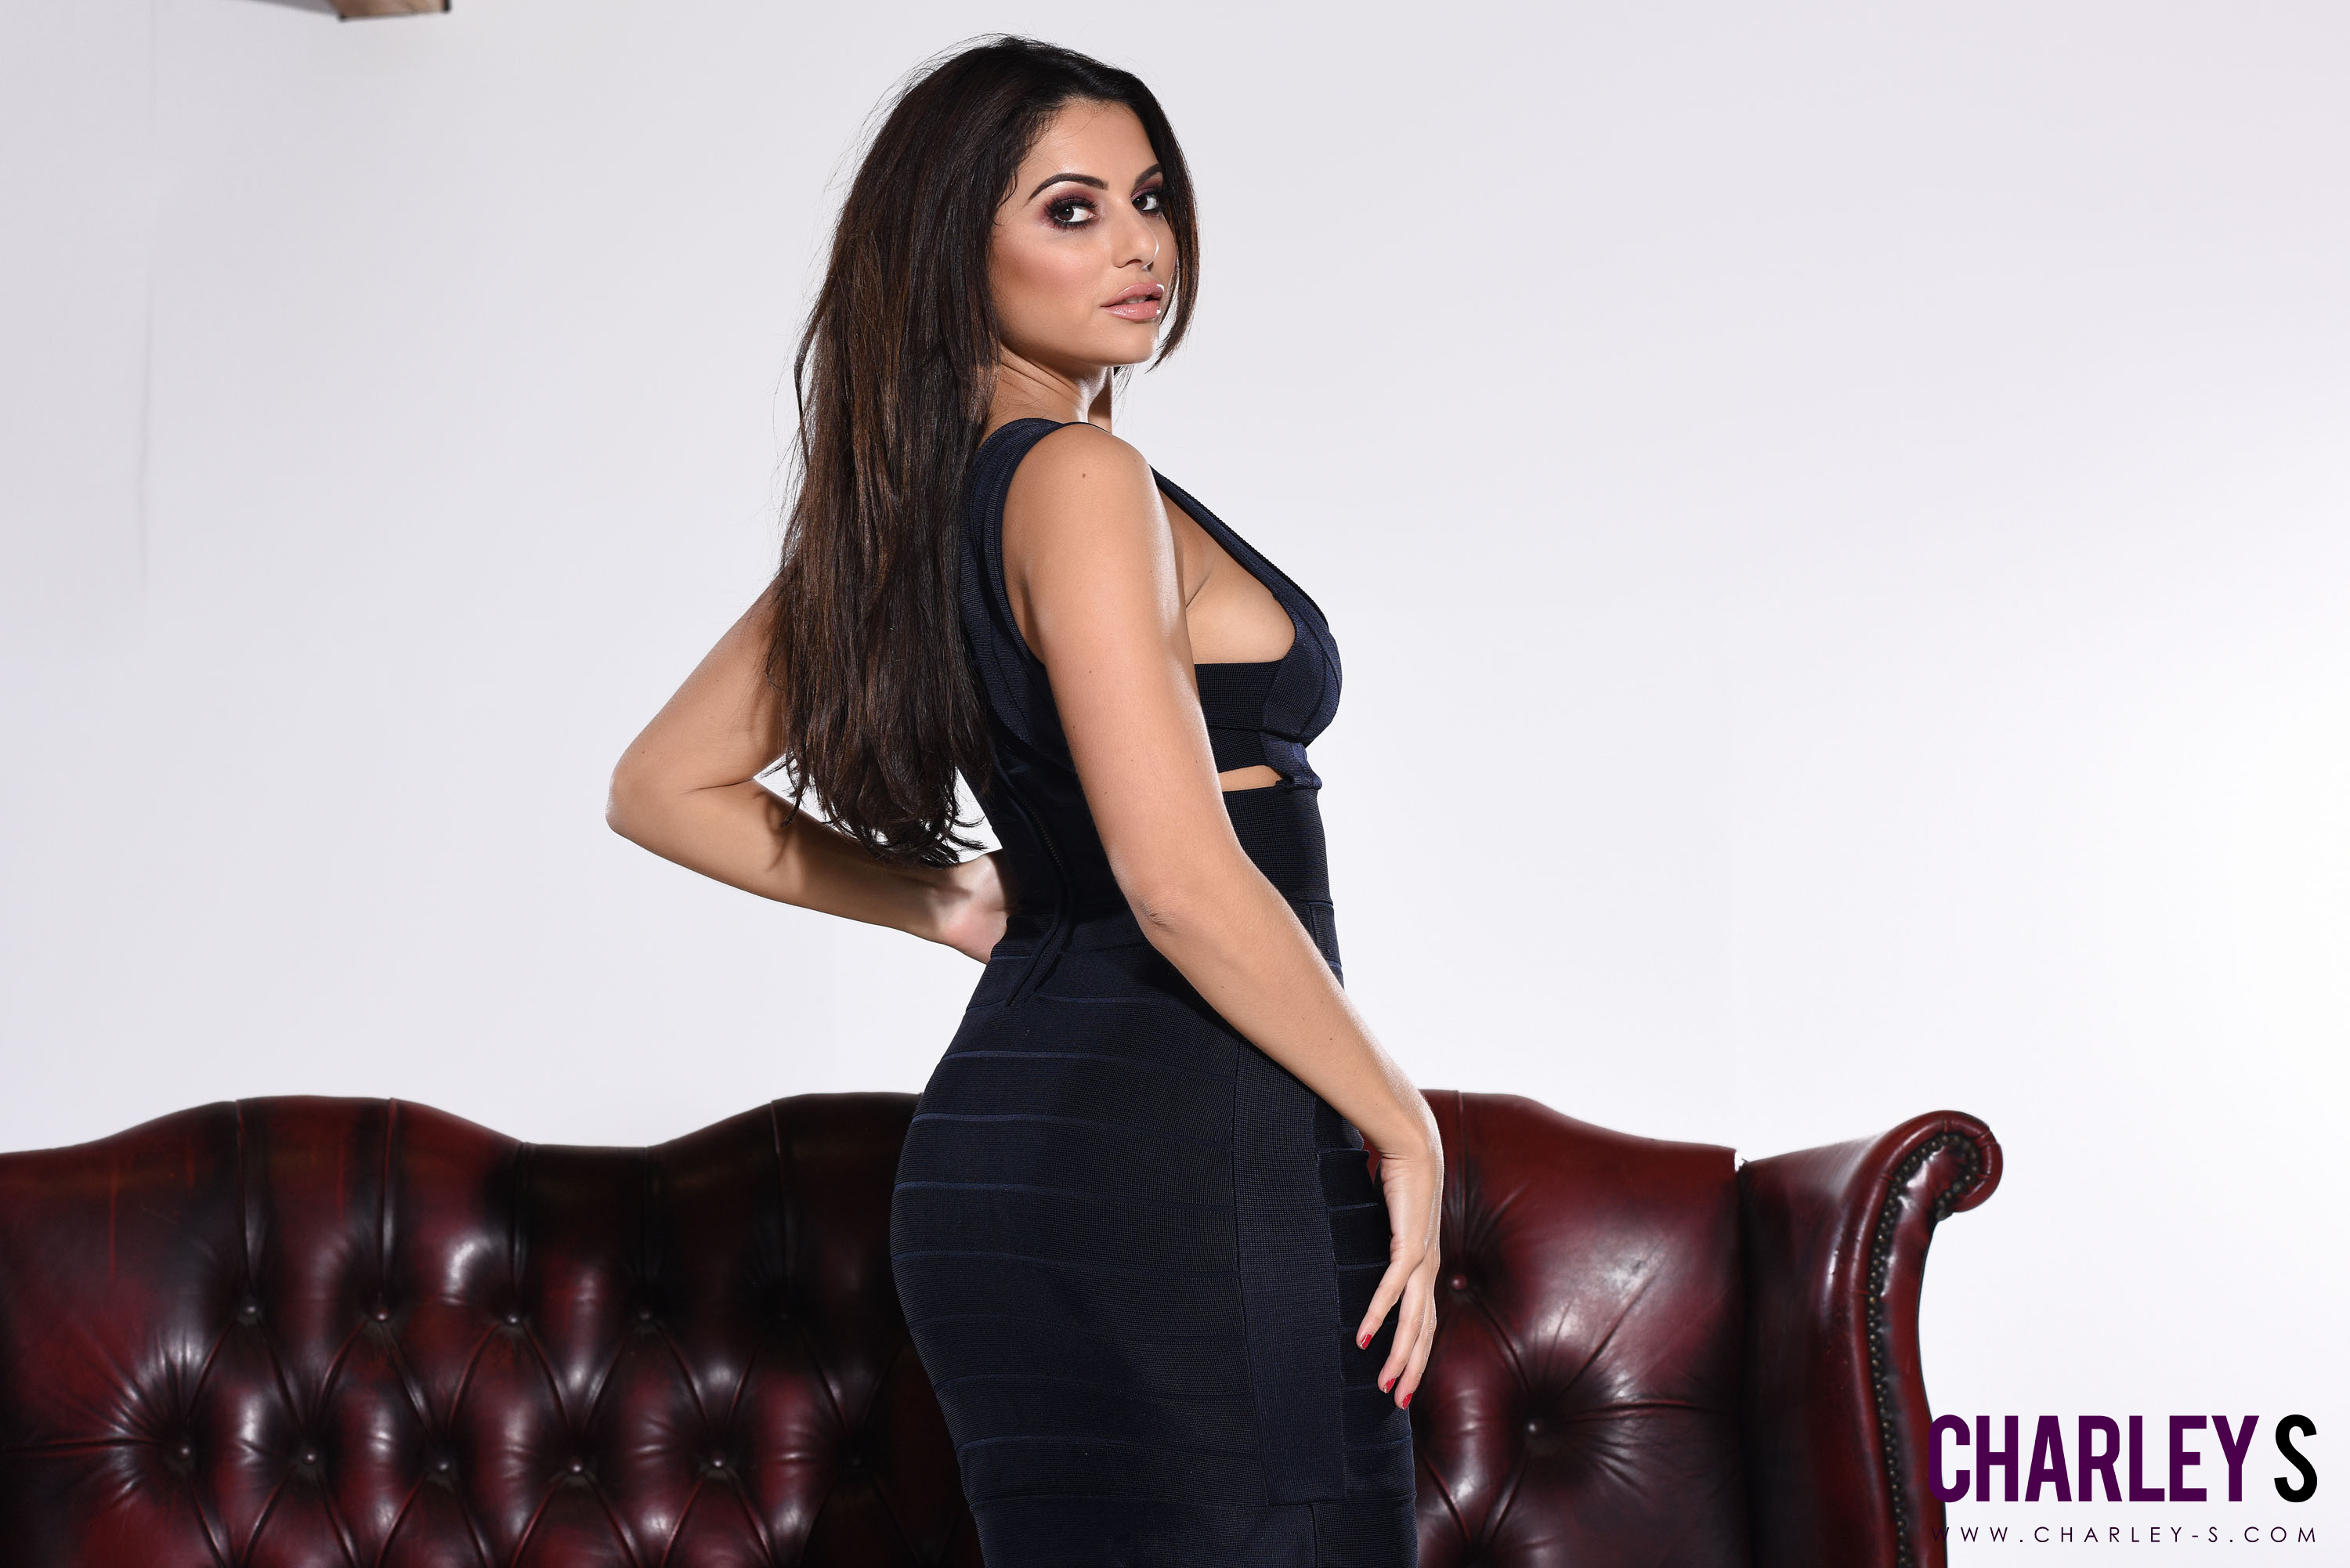 Essex tease posing on a chesterfield couch